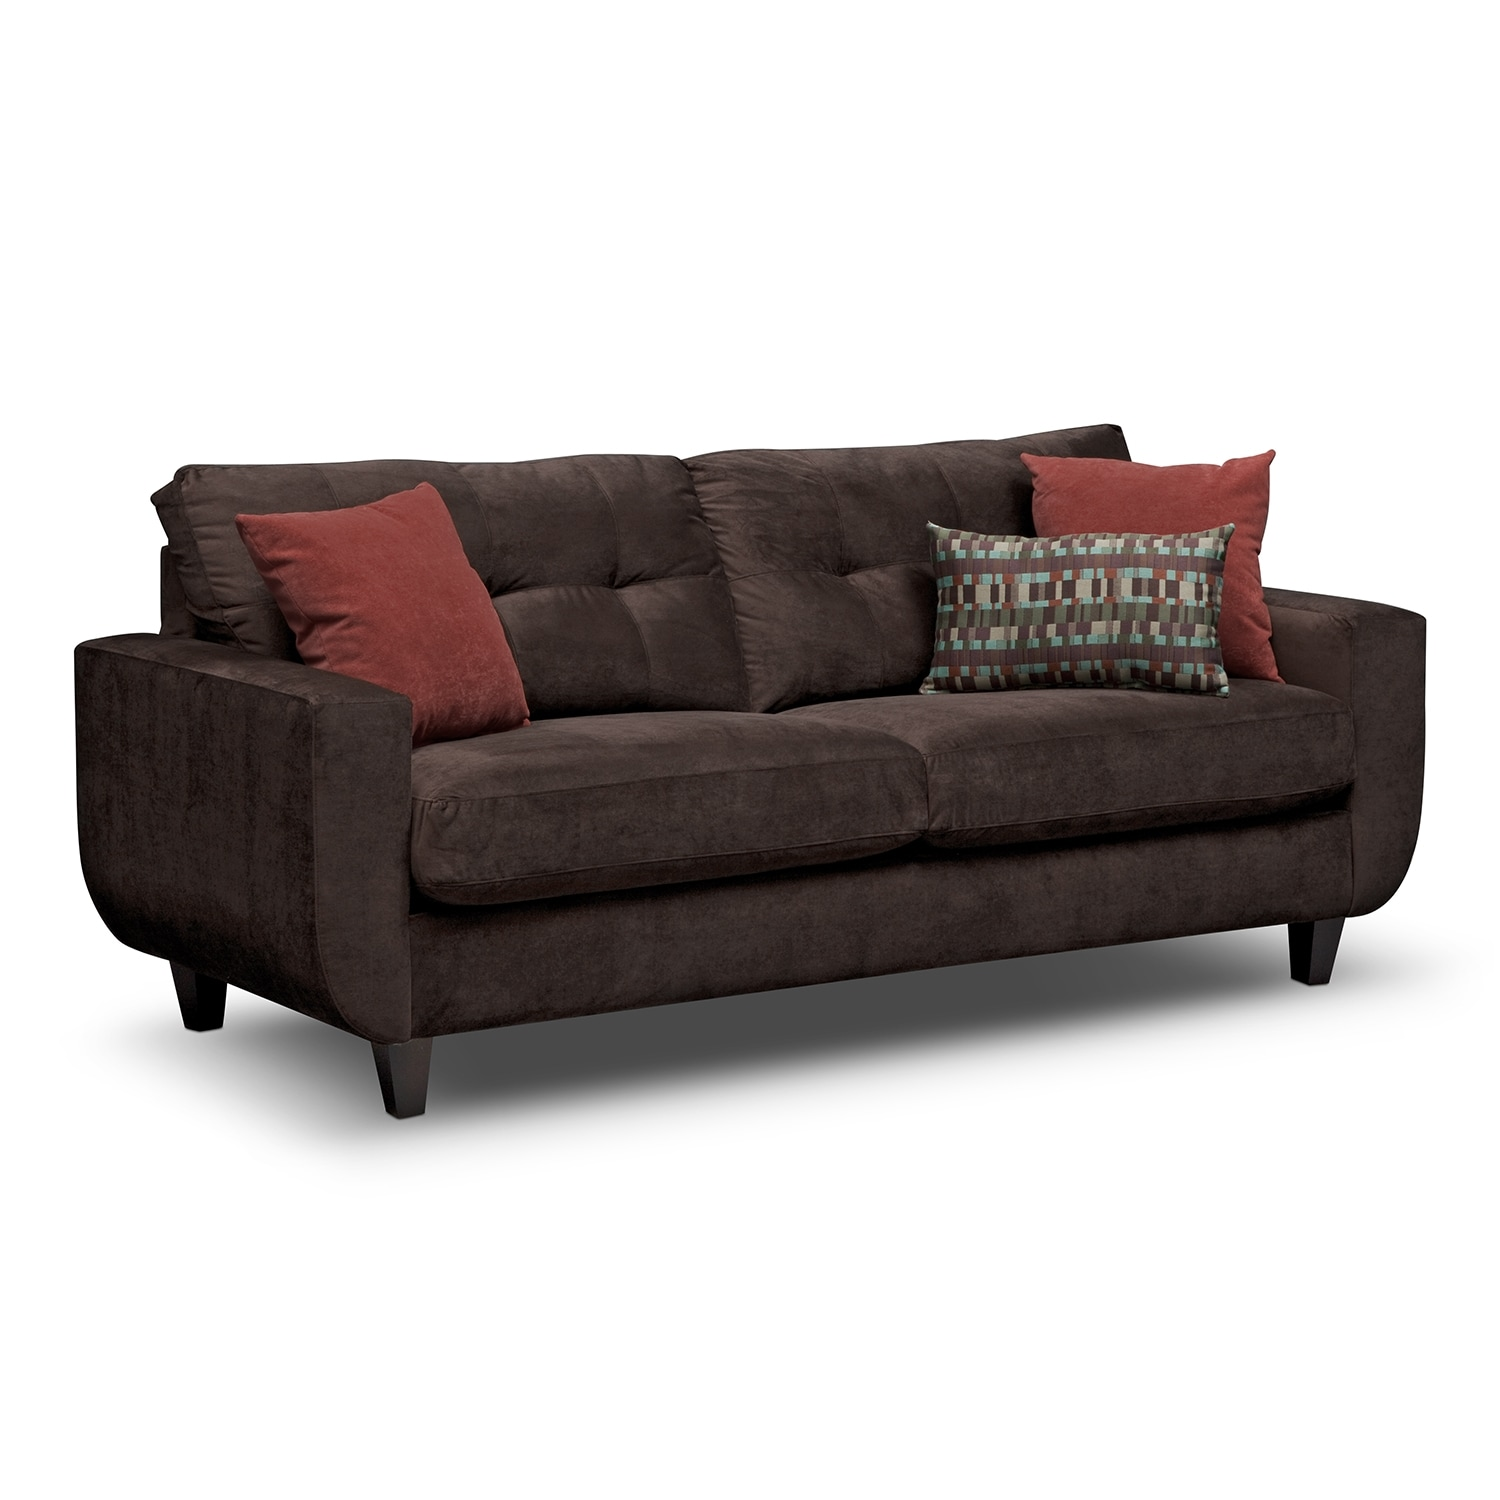 West Village Sofa - Chocolate